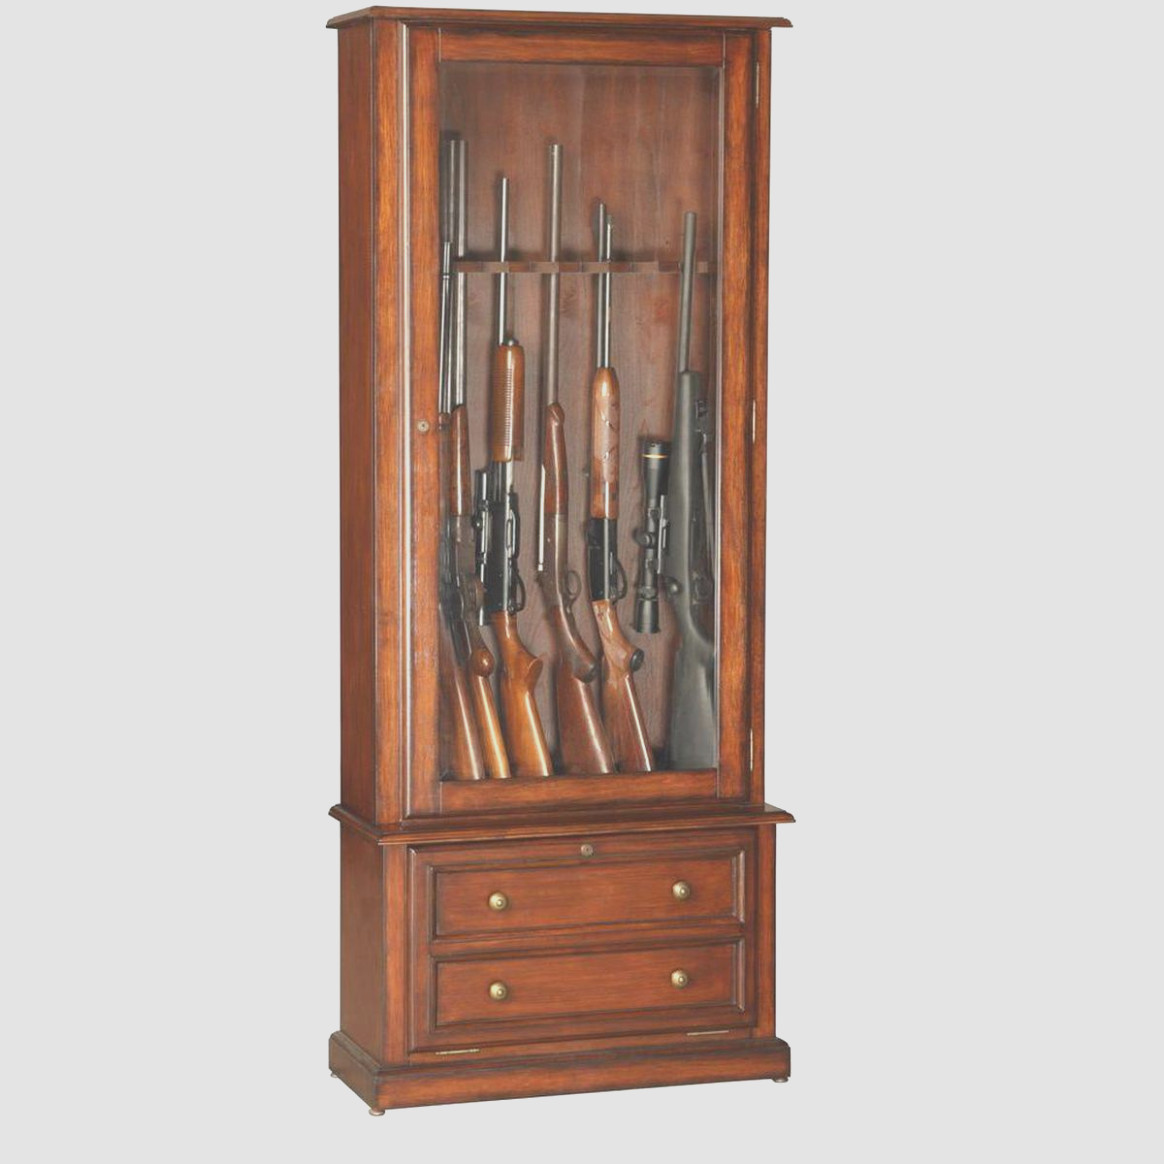 Gun Cabinet for Sale Craigslist